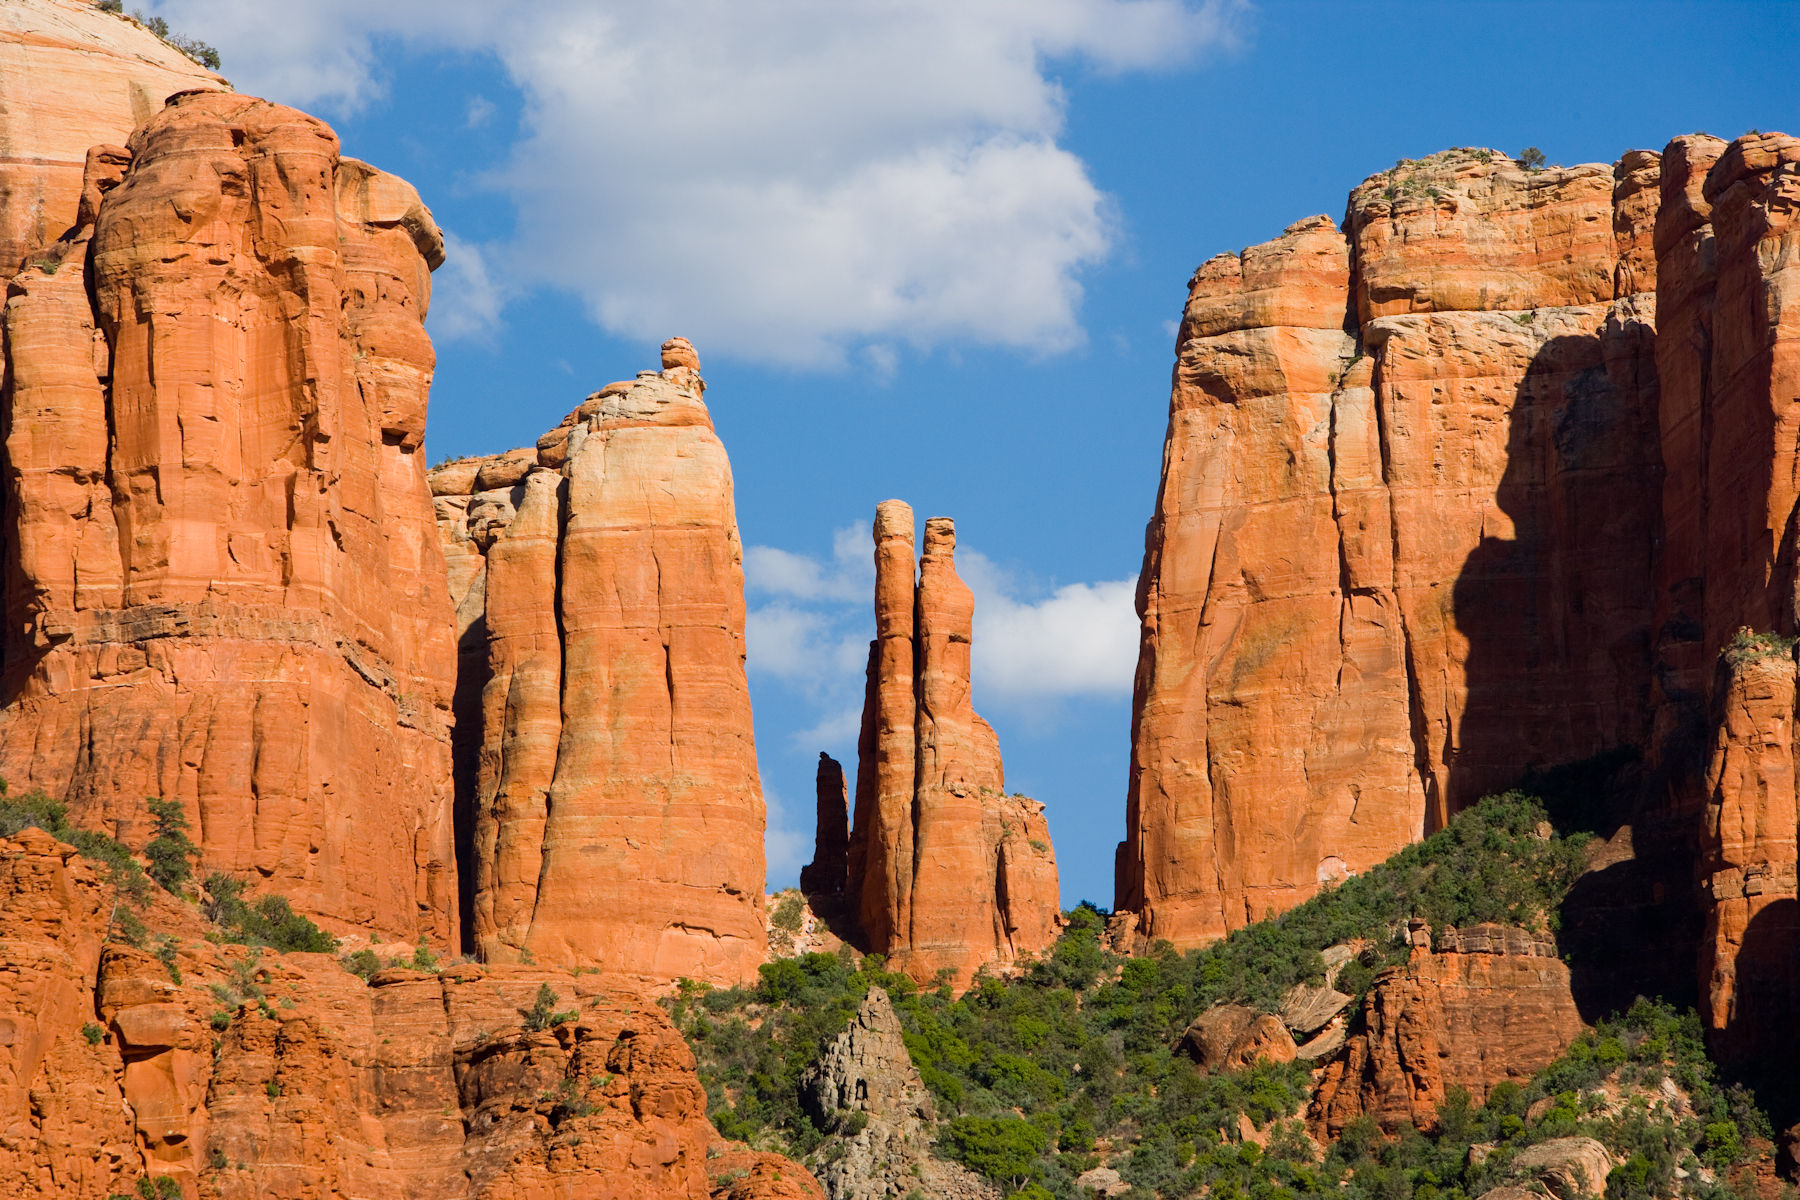 Cathedral rock at Sedona, Arizona, USA